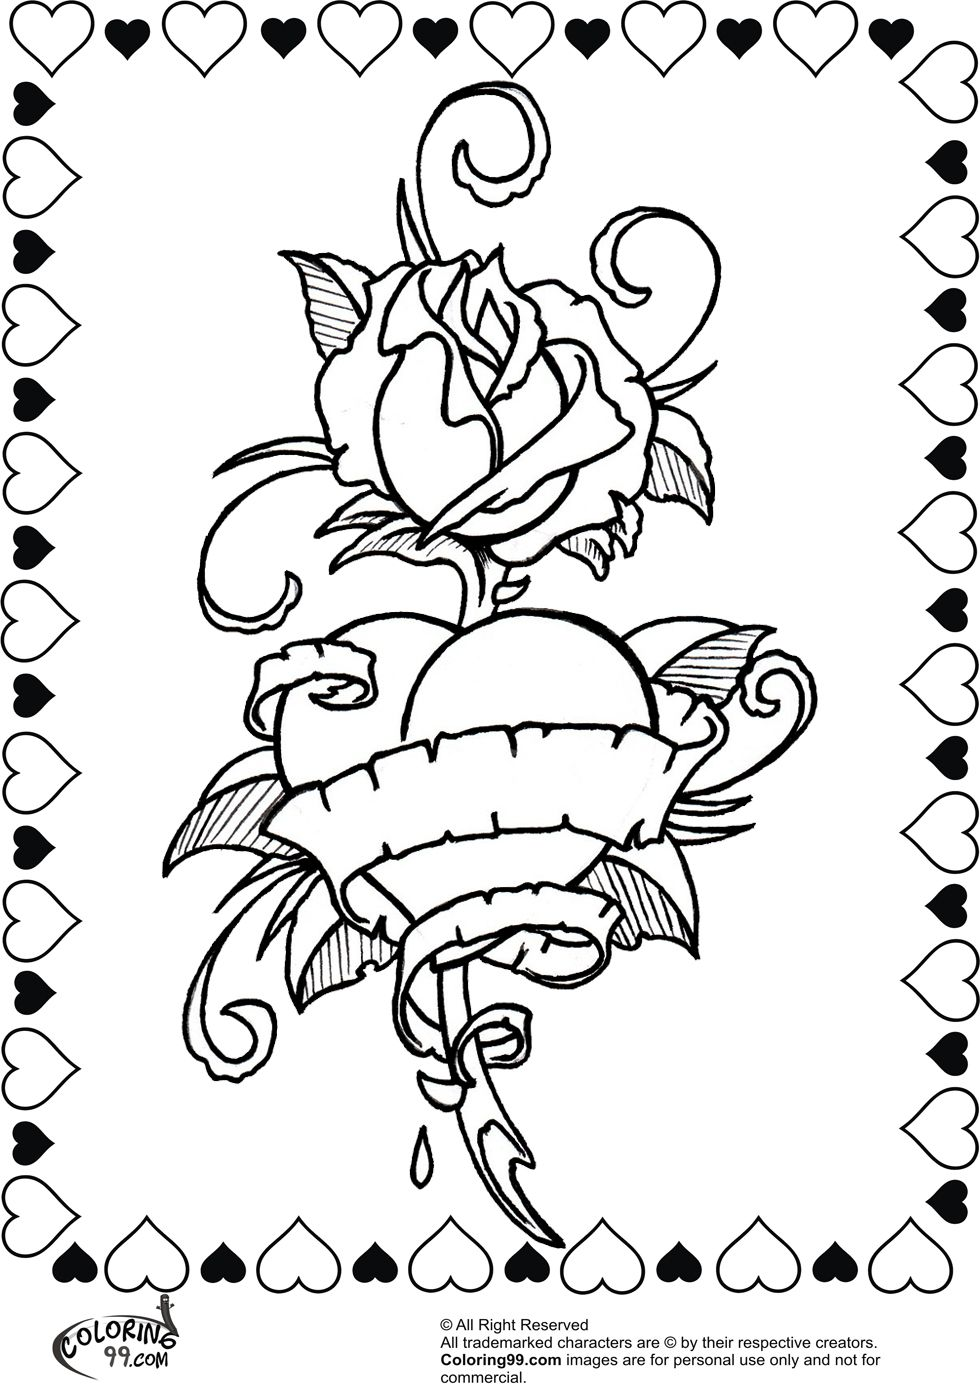 coloring pages of cool hearts and rose and ribbon printable enjoy coloring - Coloring Pages Hearts Roses